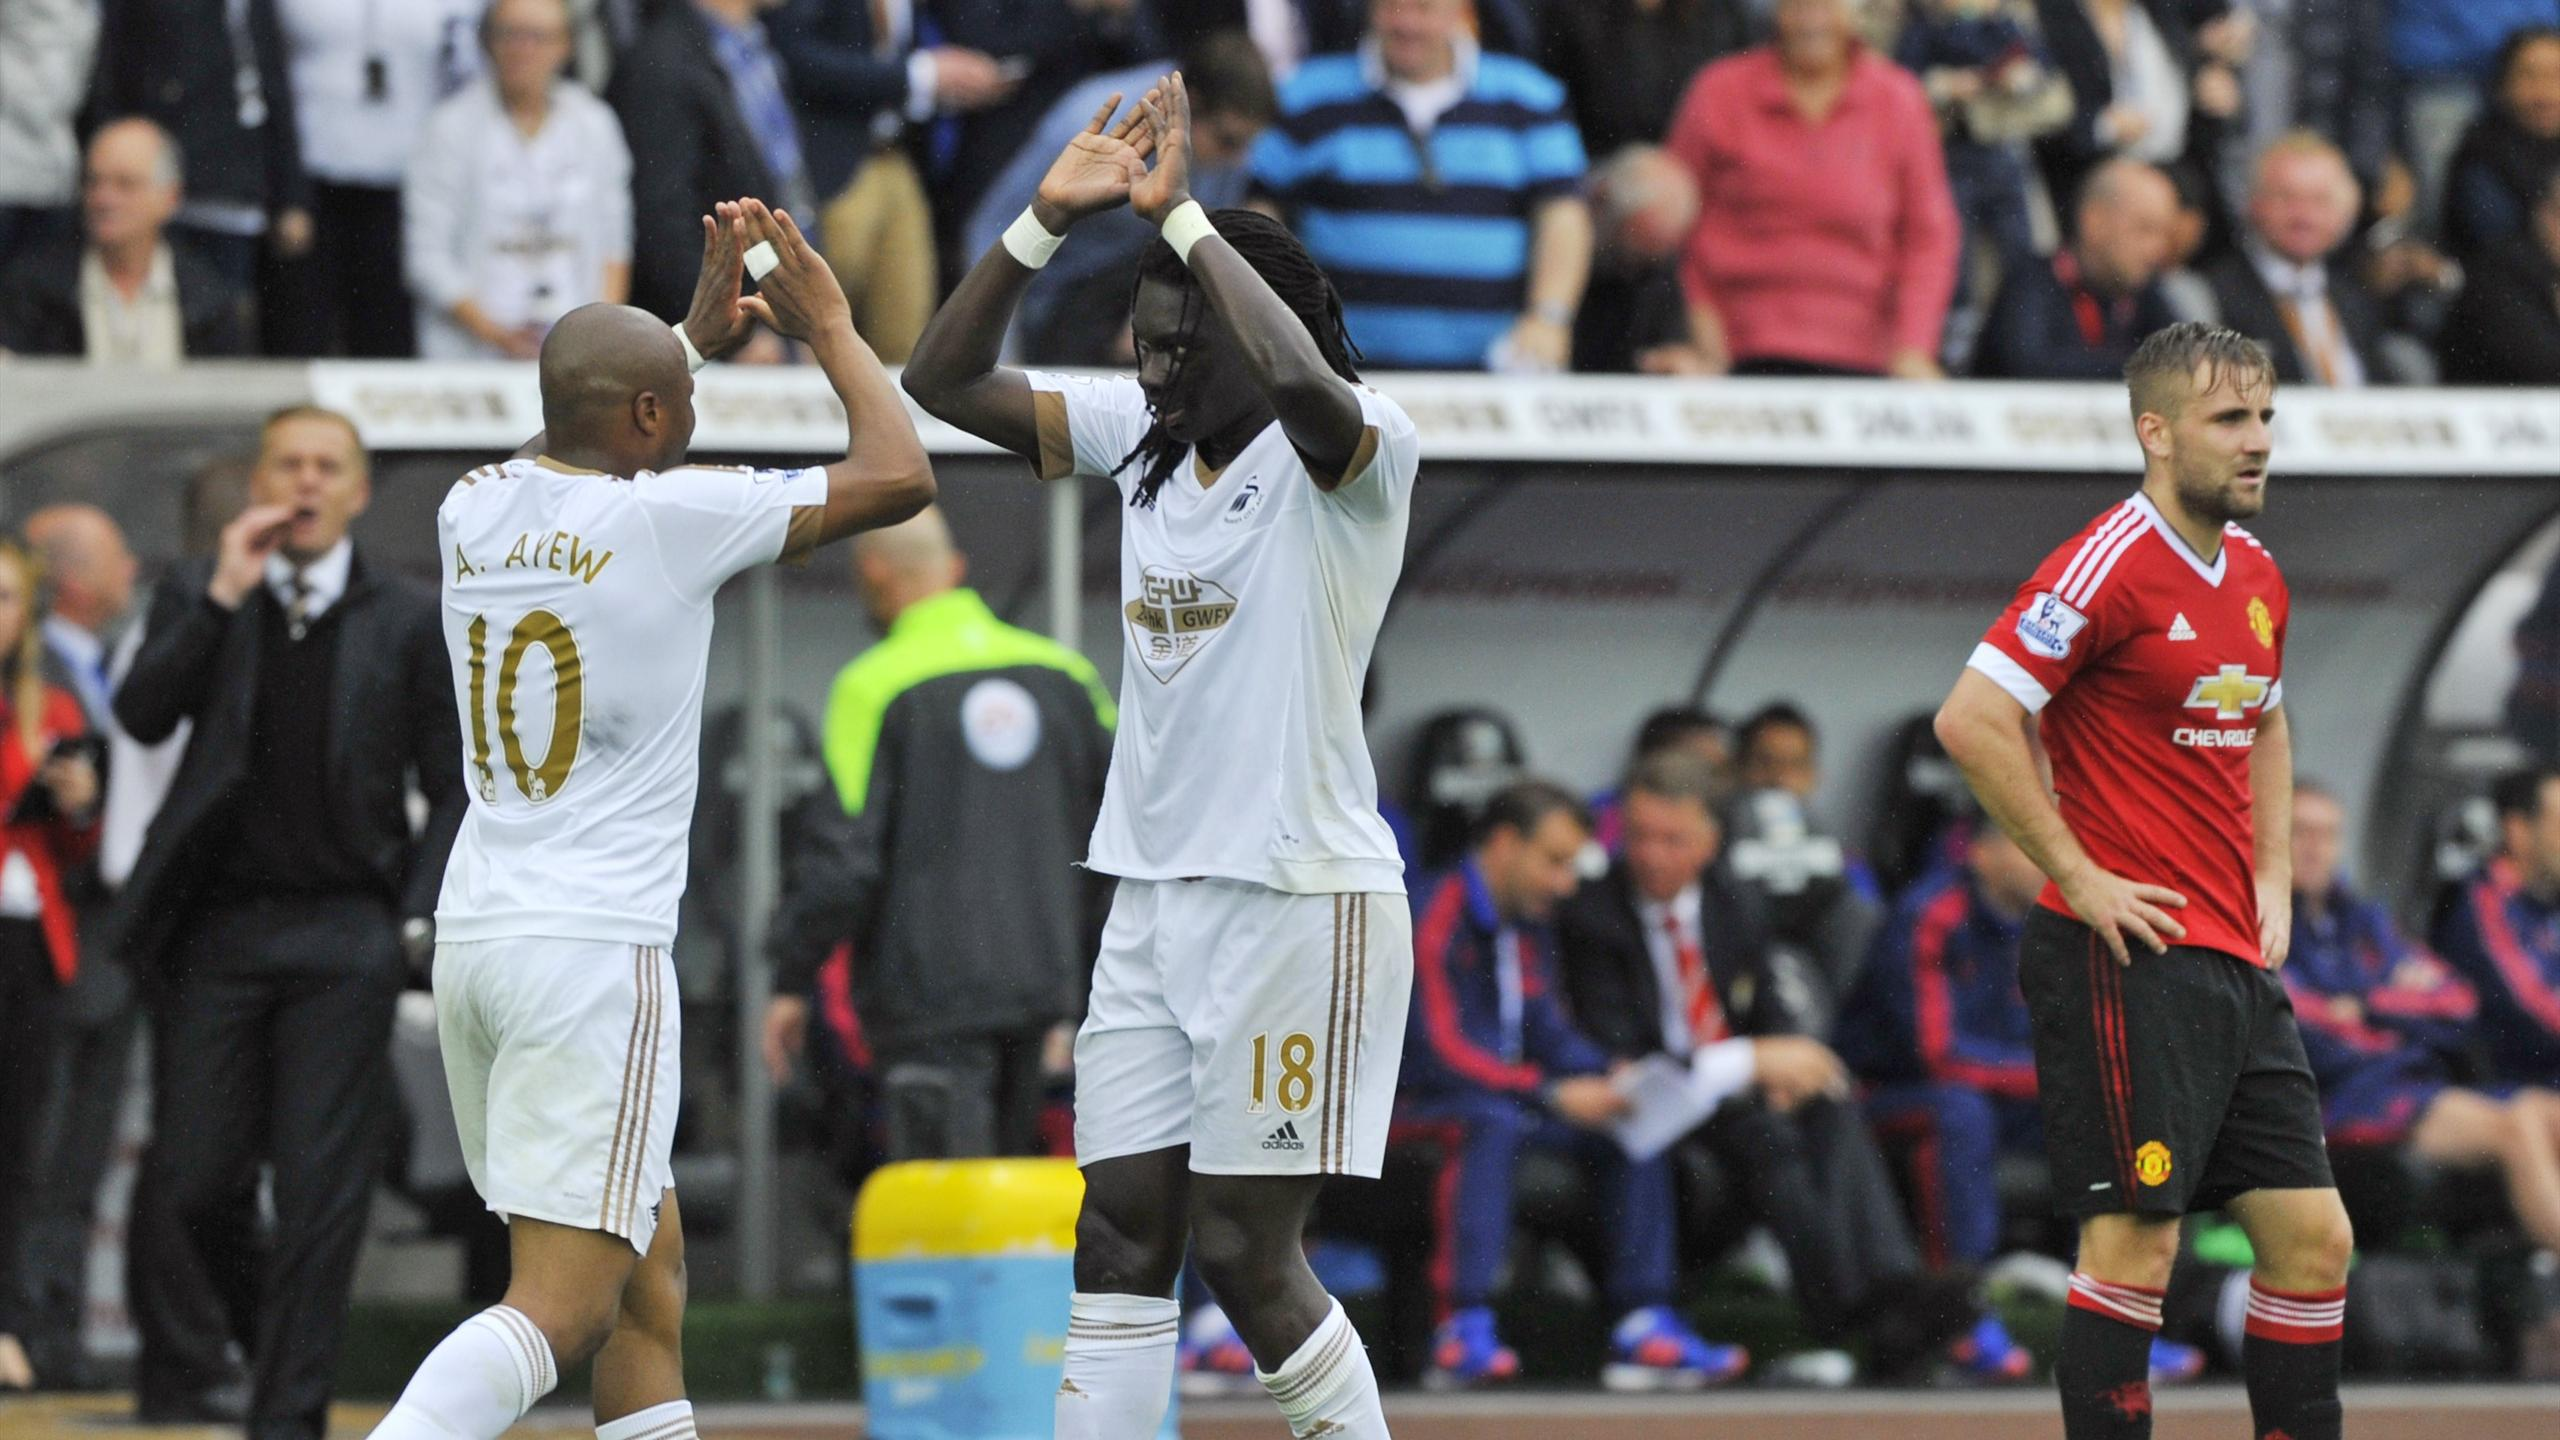 Bafetimbi Gomis celebrates with Andre Ayew after scoring the second goal for Swansea against Manchester United